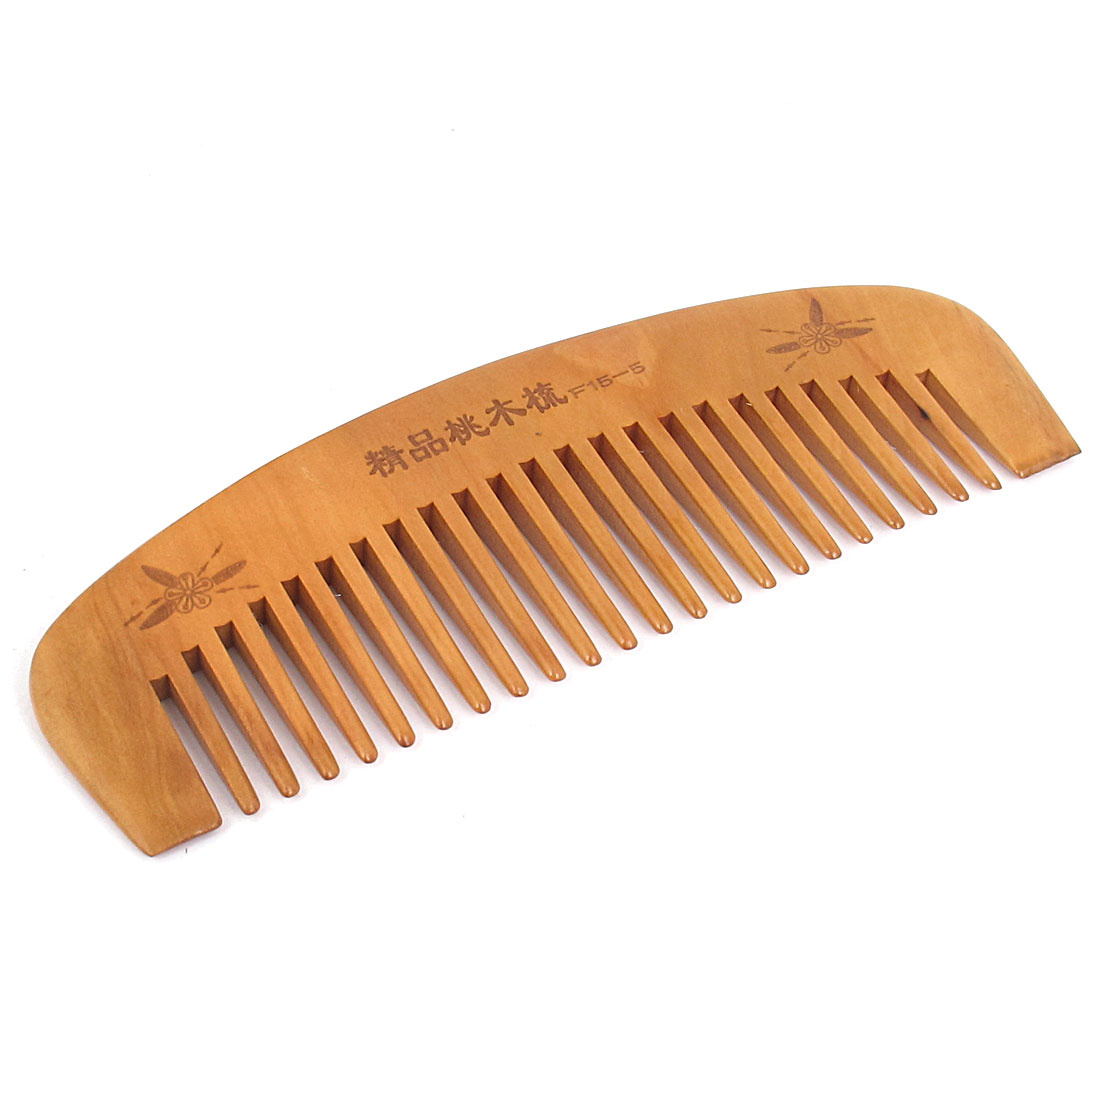 "5.8"" Length Wooden Color Healthy Hair Care Toothed Portable Natural Antistatic lightweight Peach Comb for Ladies Gentlemen"